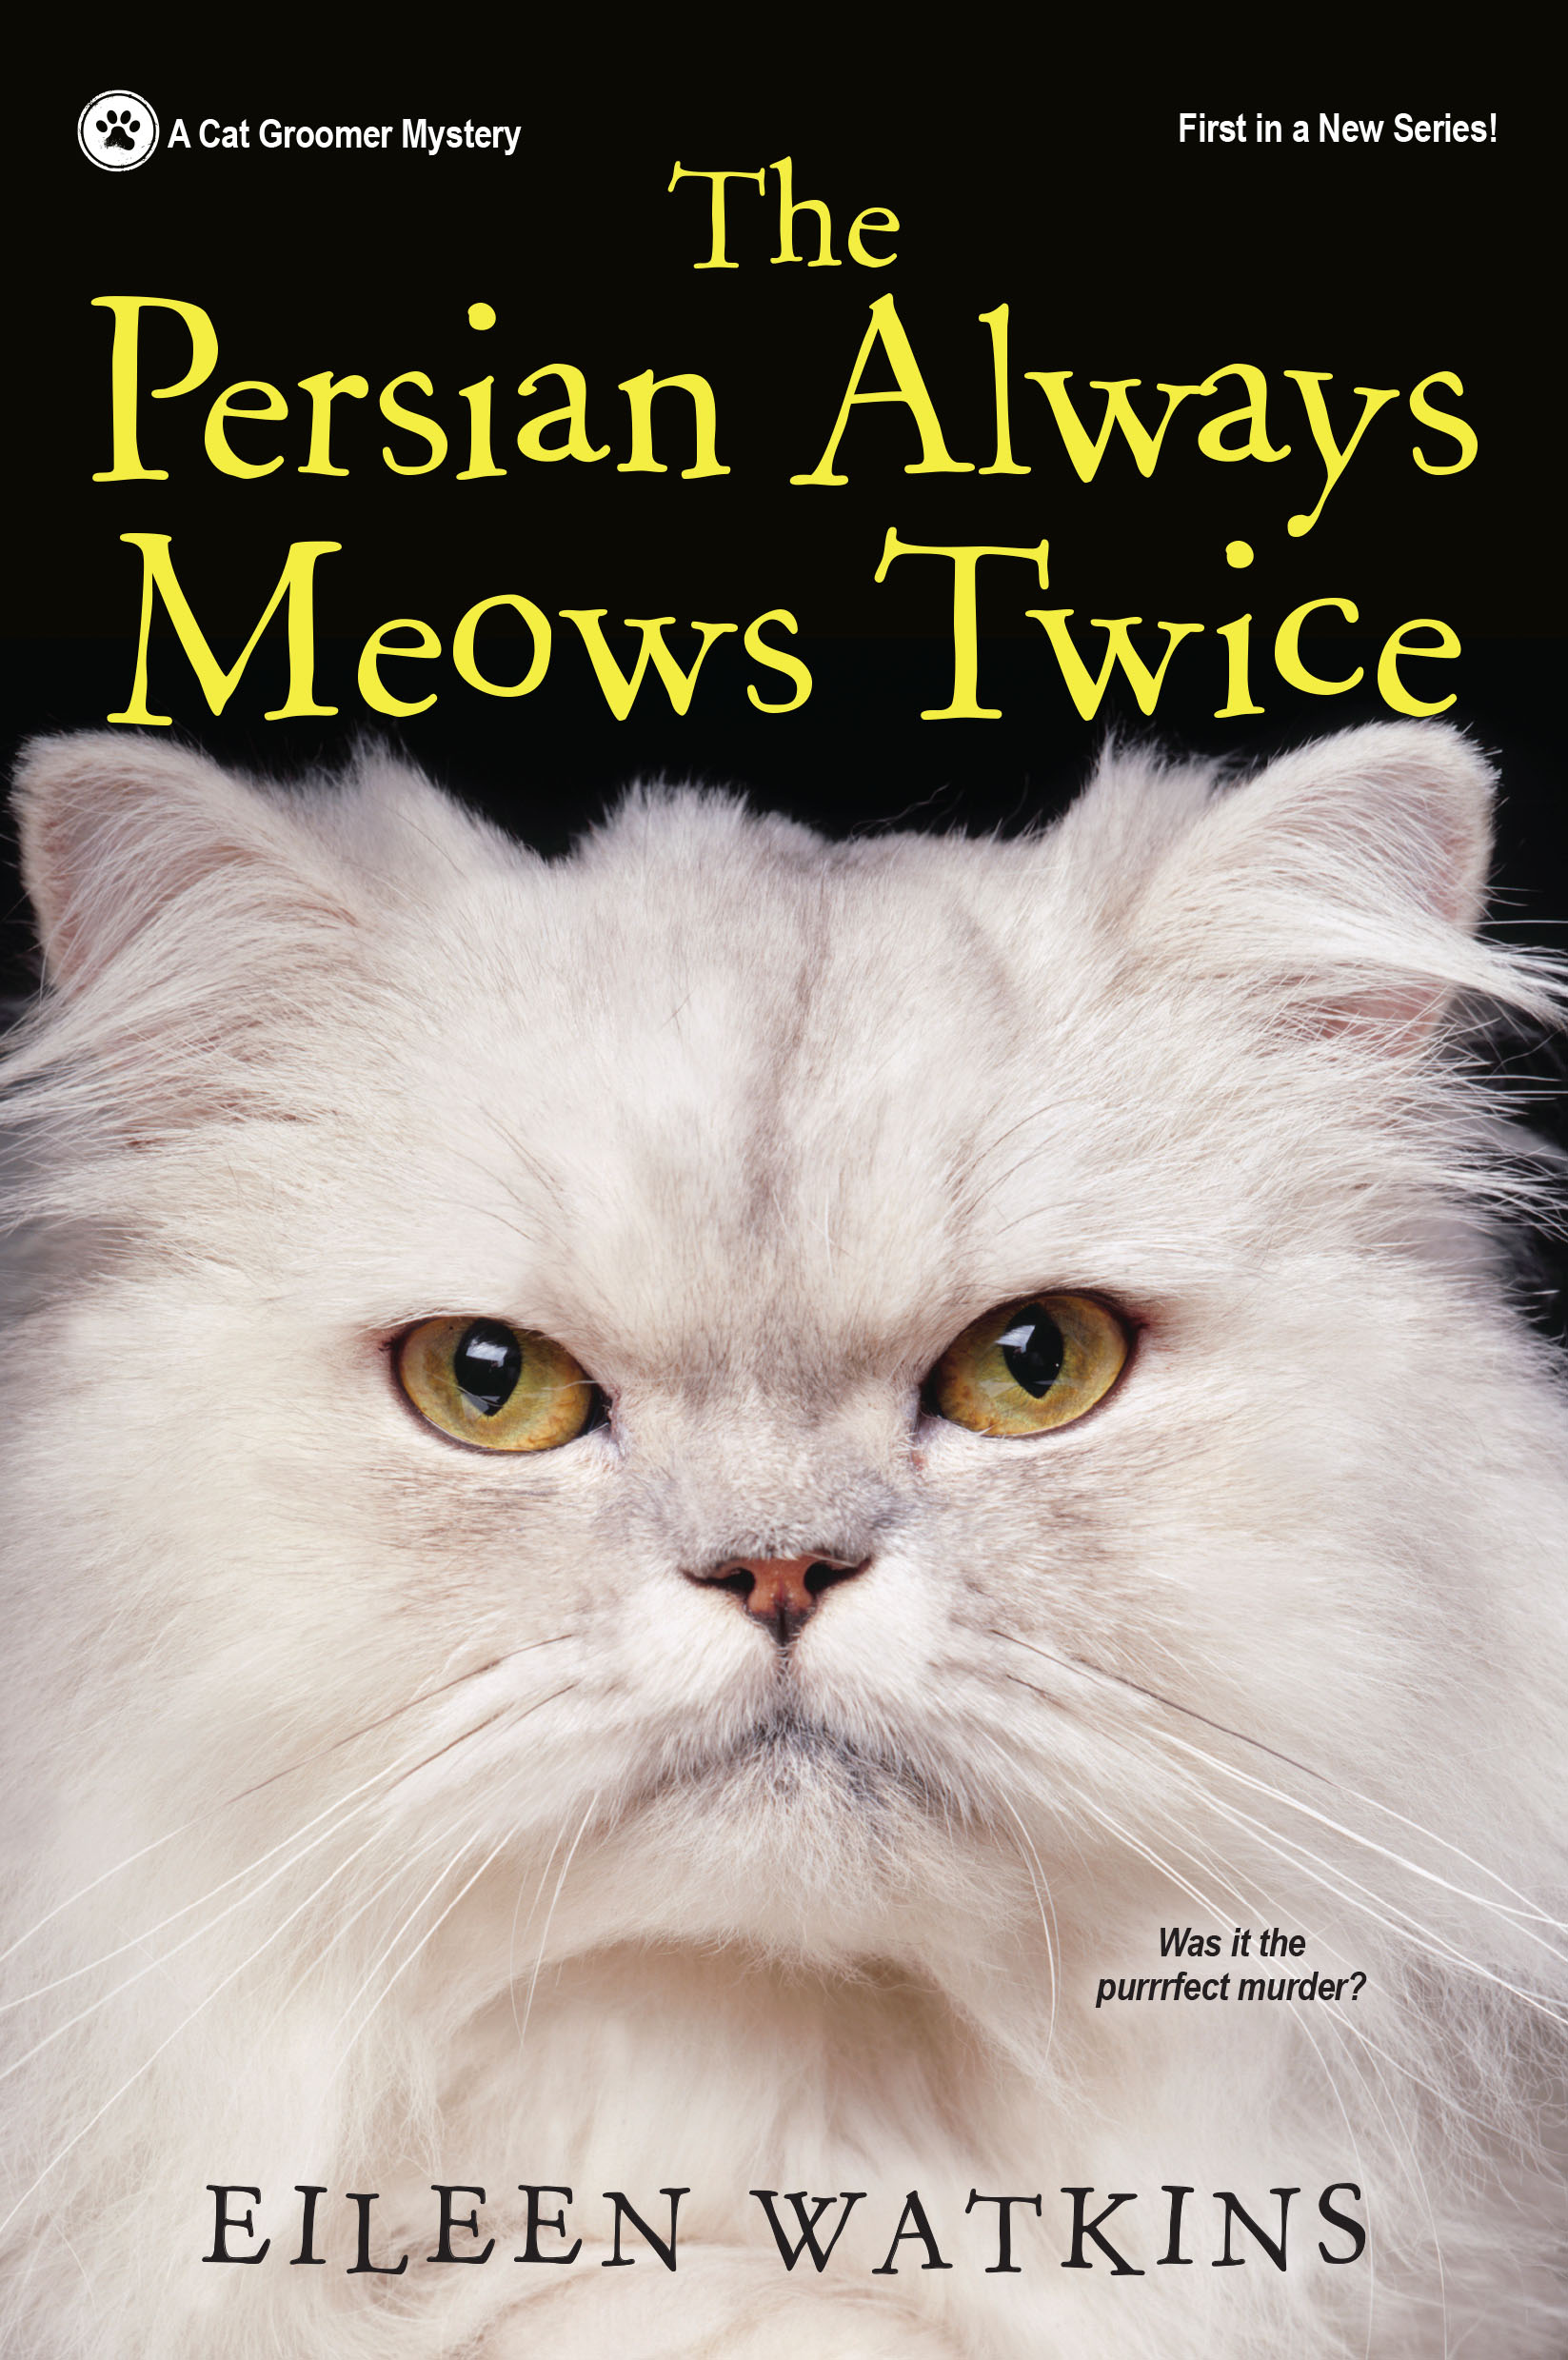 the persian cat always meows book cover